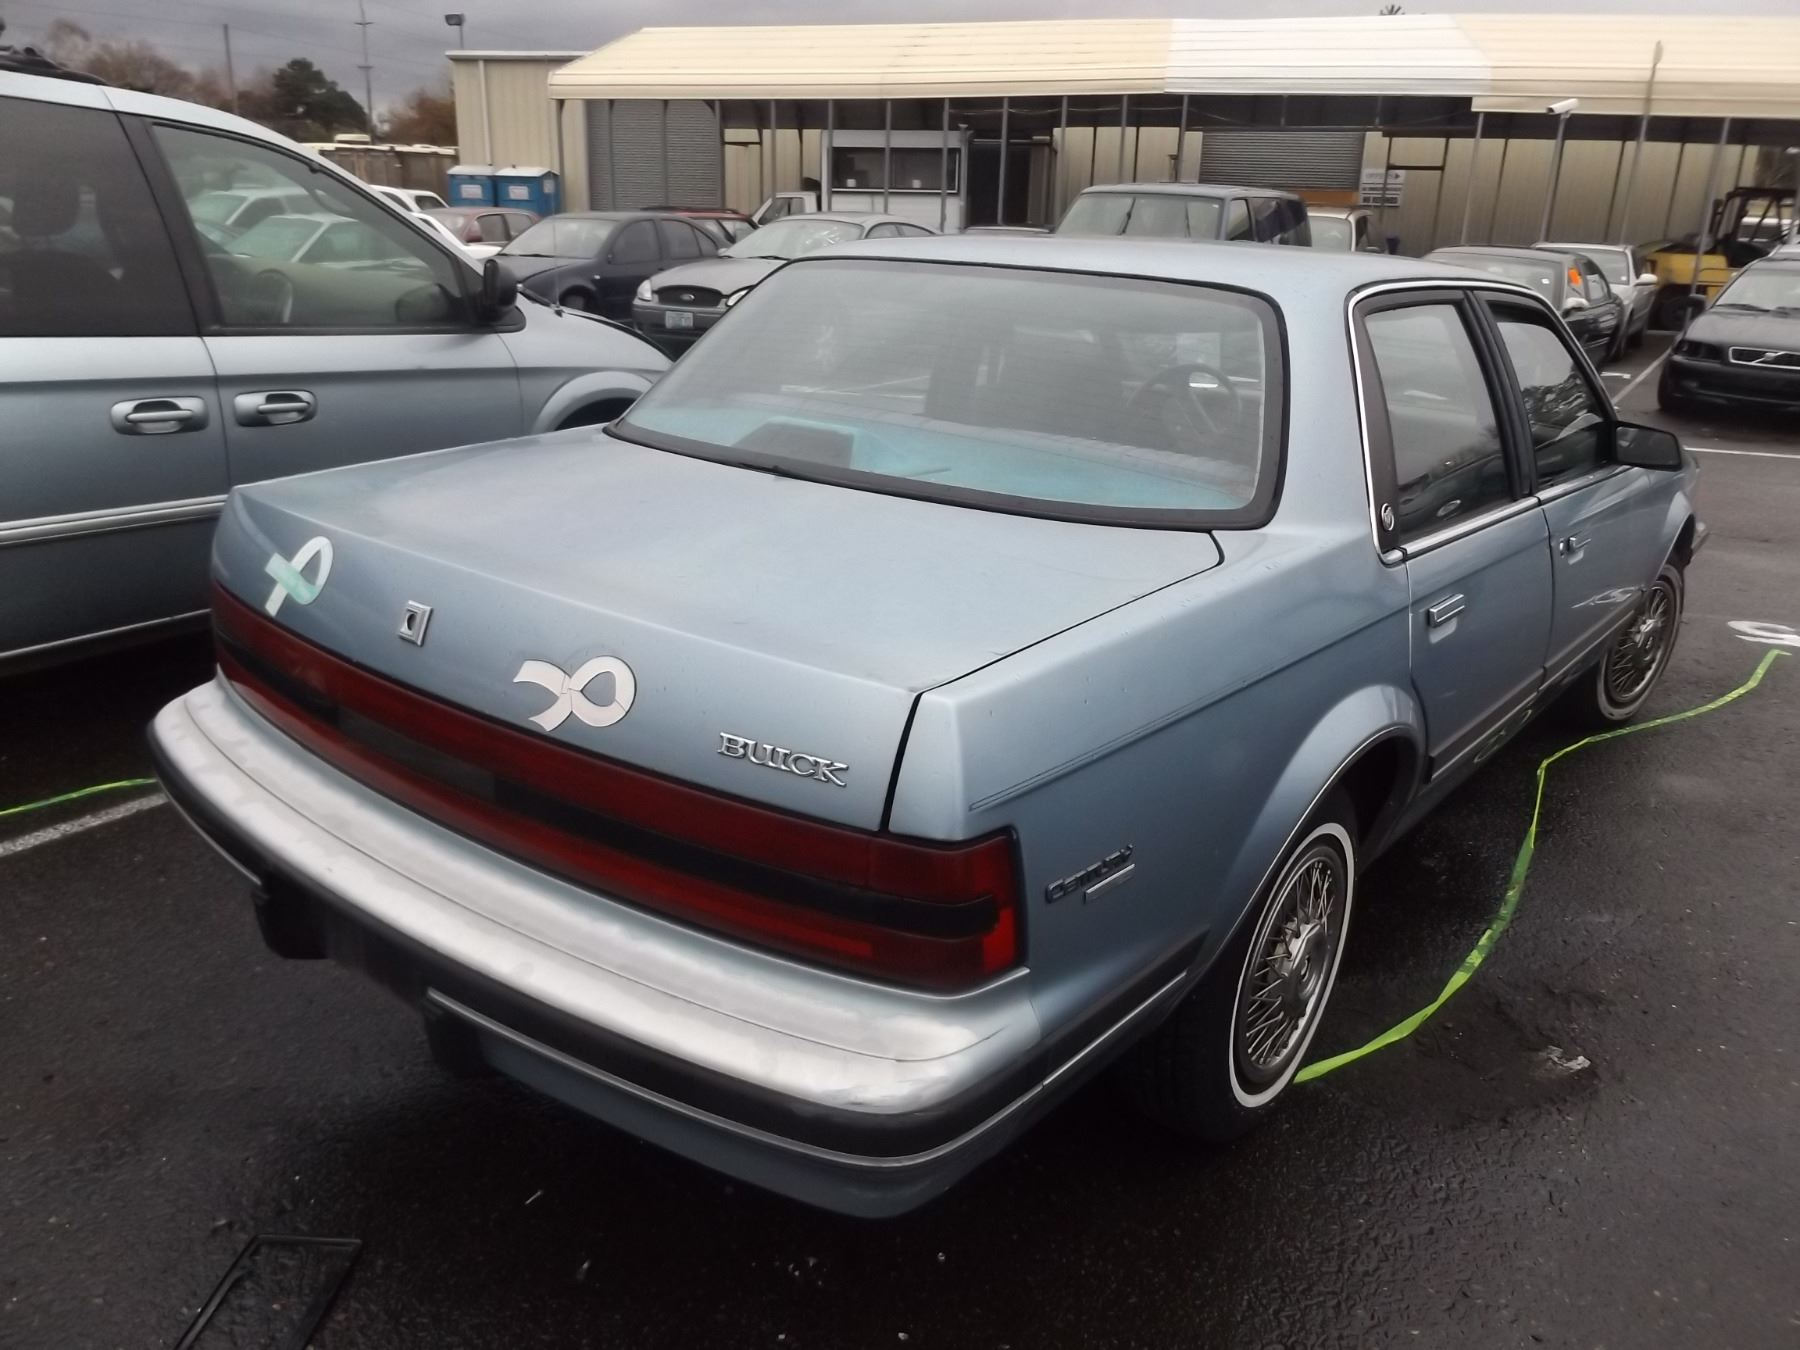 hight resolution of  image 3 1996 buick regal